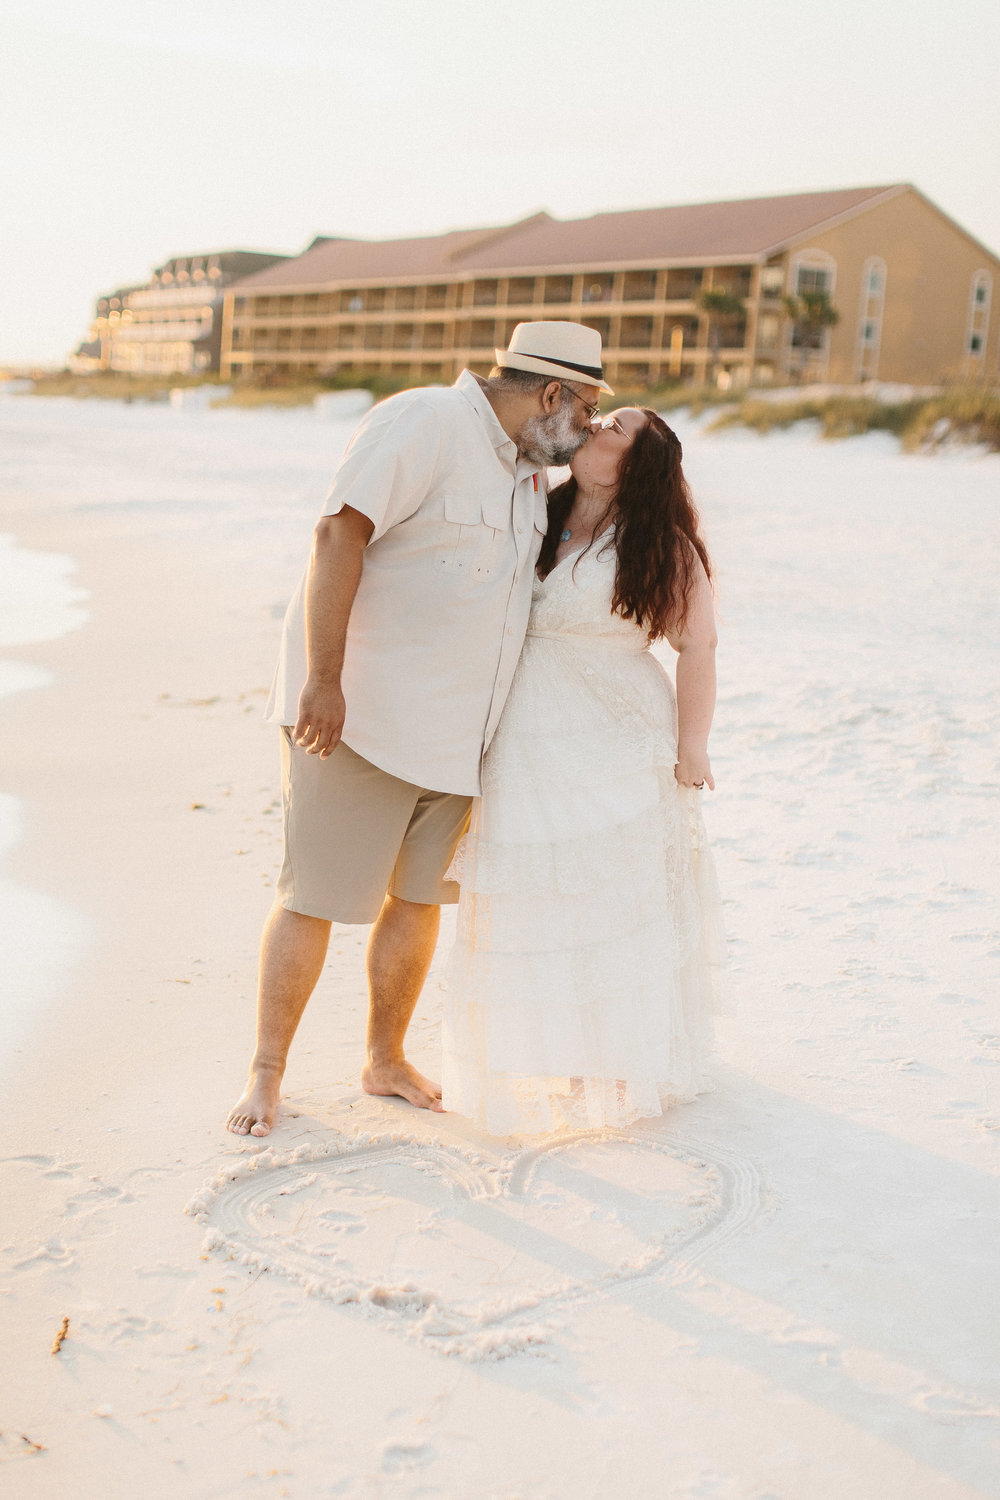 destin_sunset_beach_elopement_intimate_wedding_photographer_florida_documentary_1270.jpg